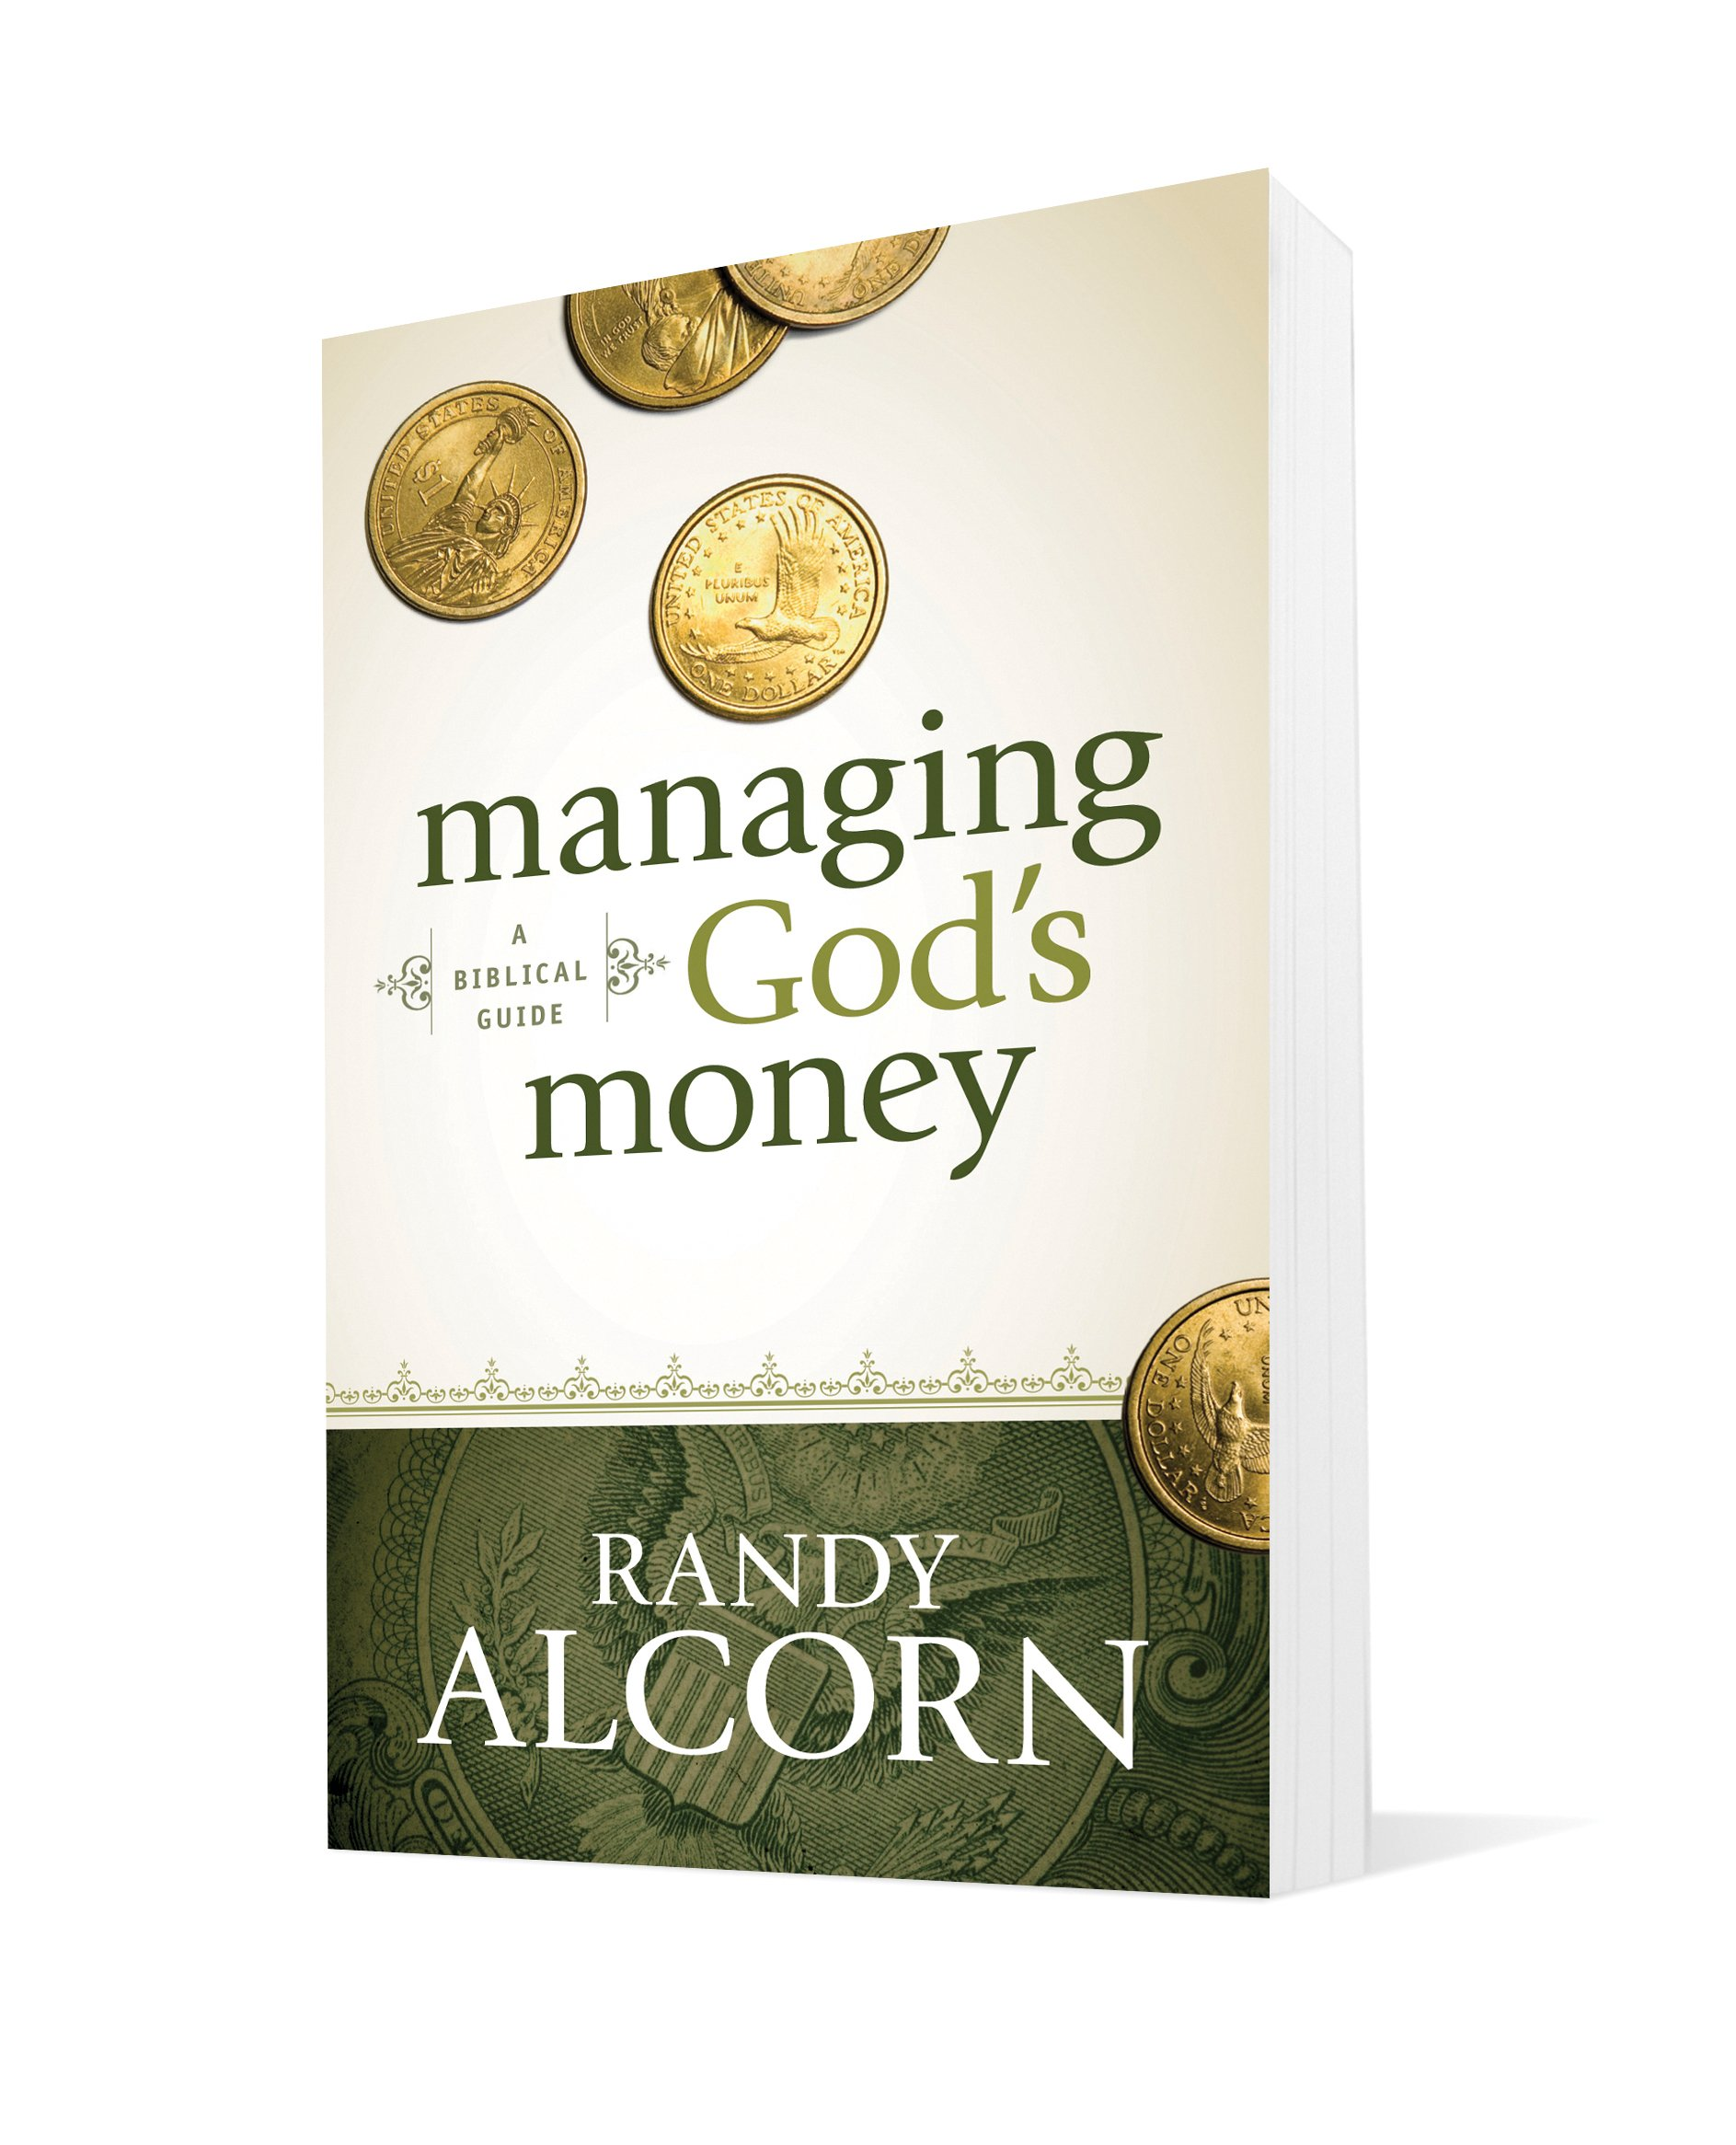 Managing God's Money: A Biblical Guide by Randy Alcorn